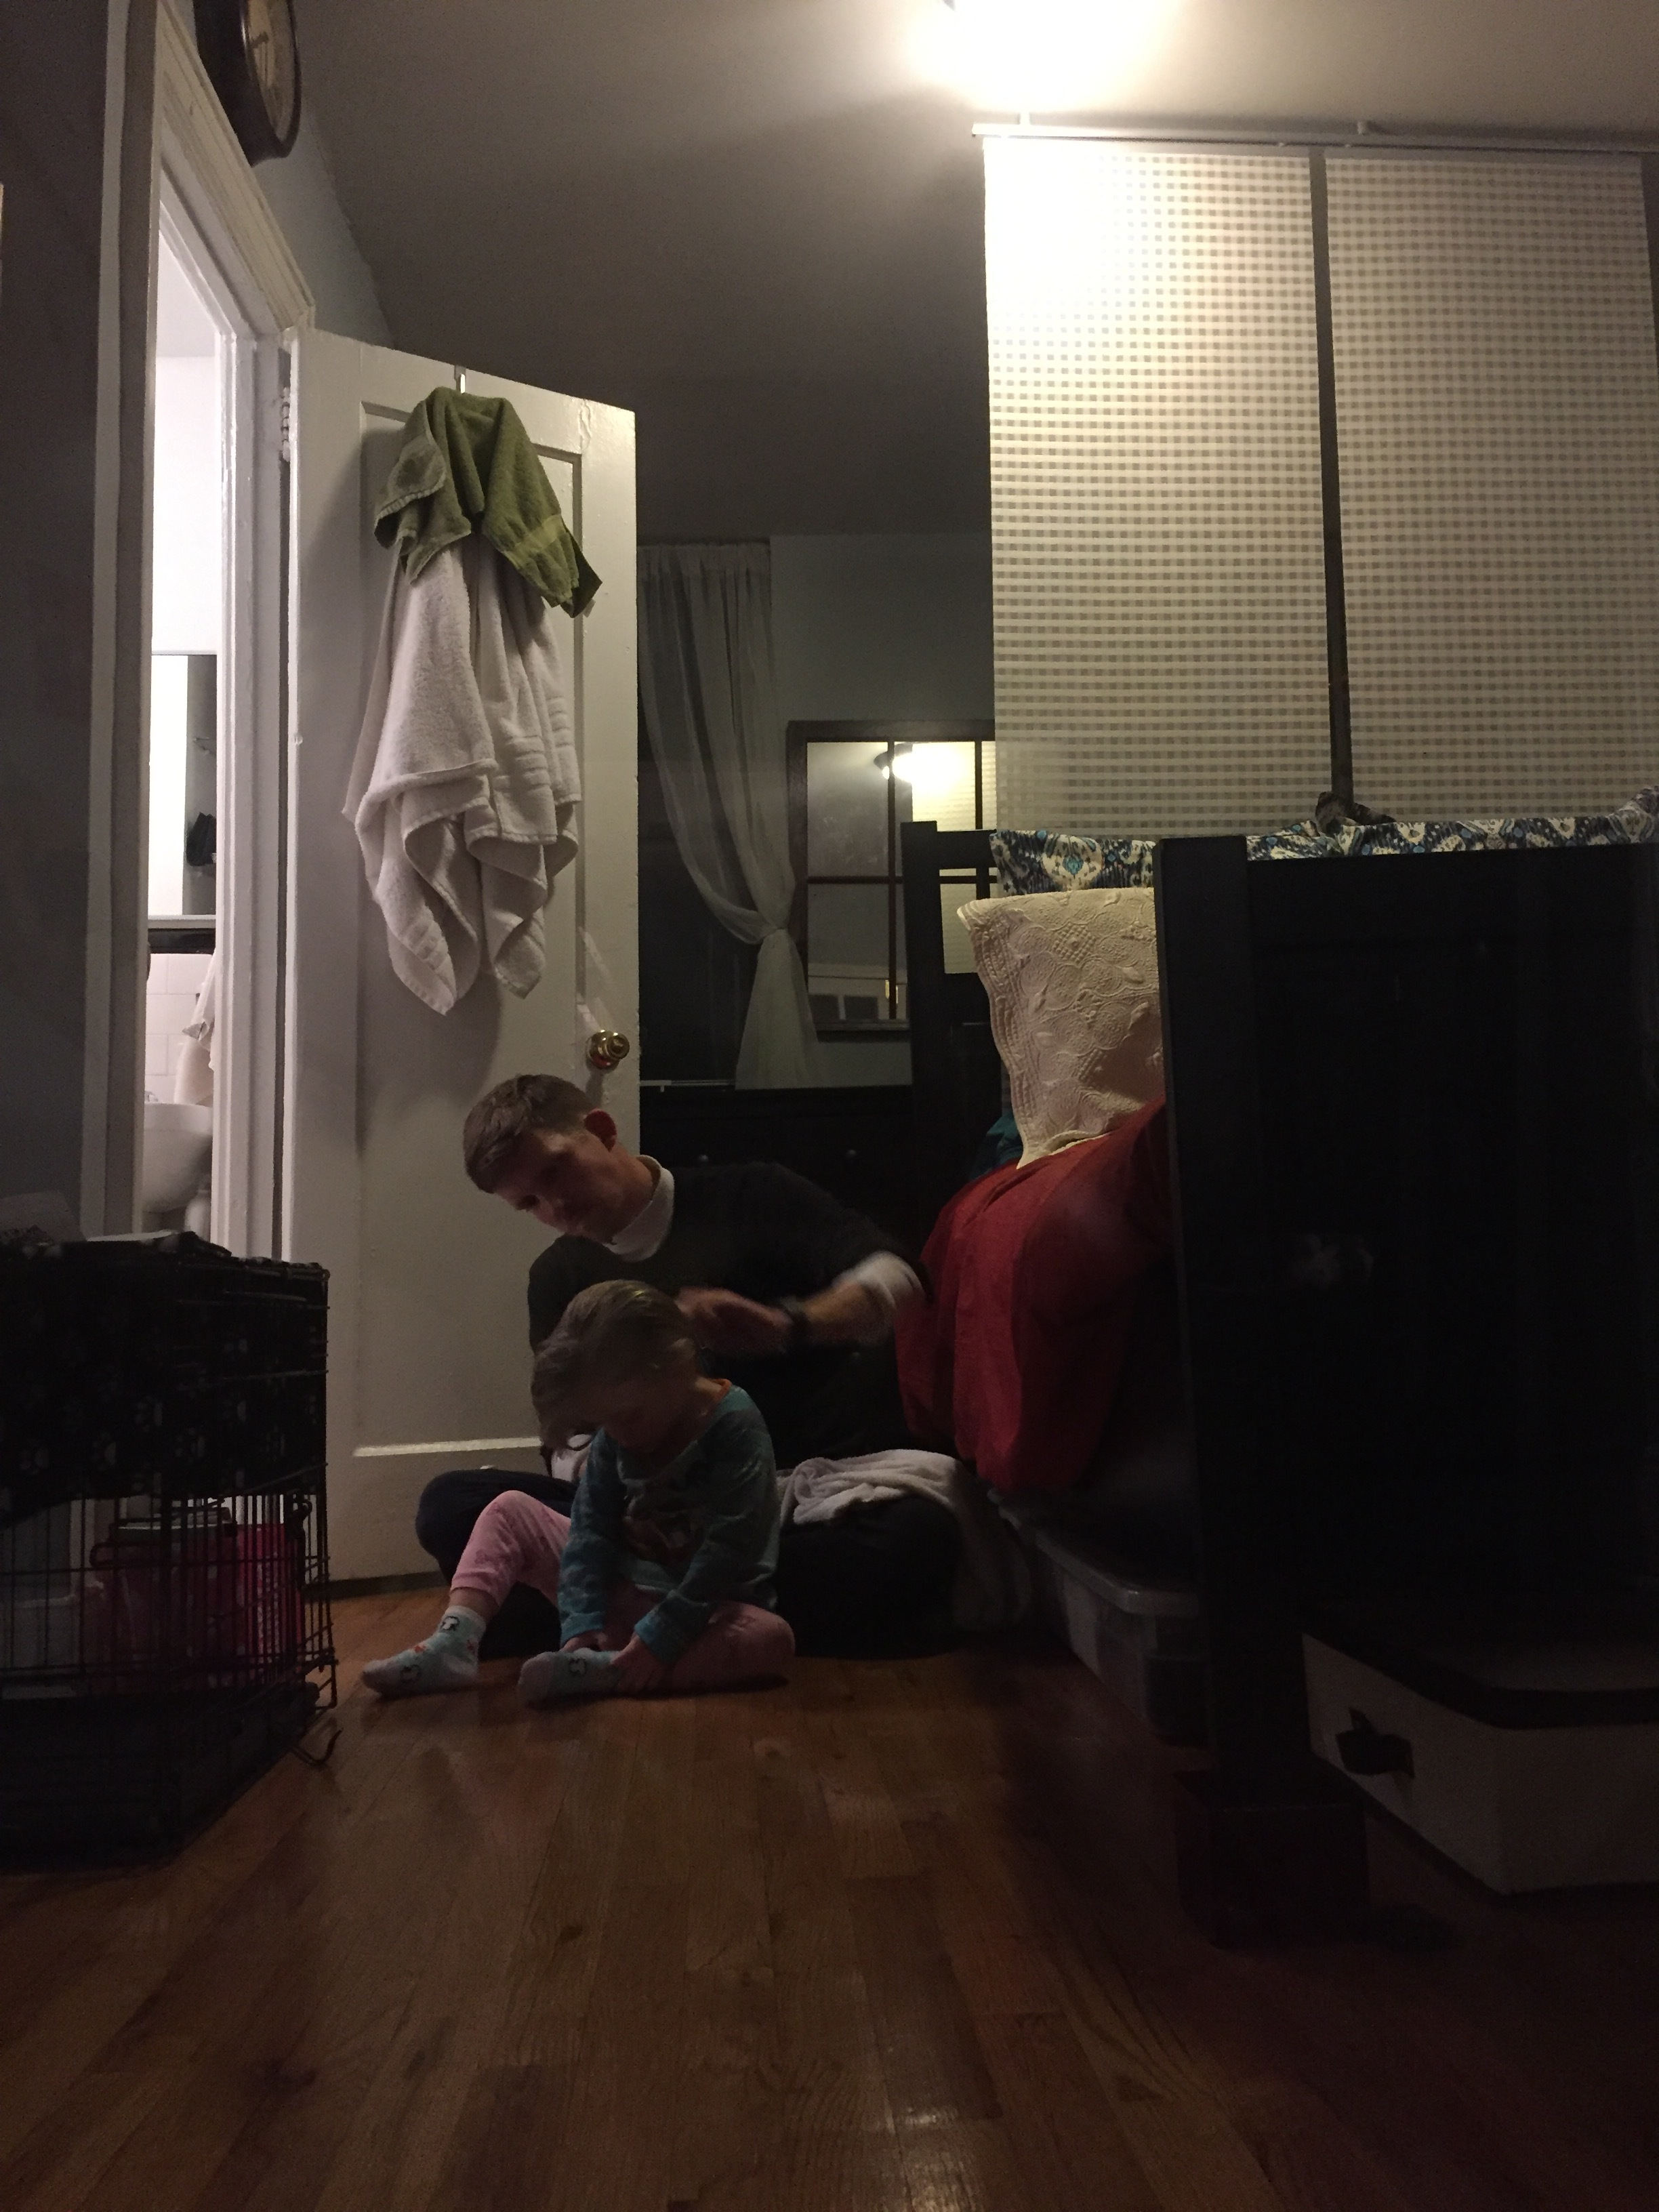 Just a regualr night. Daddy brushing Lucie's hair after her bath.